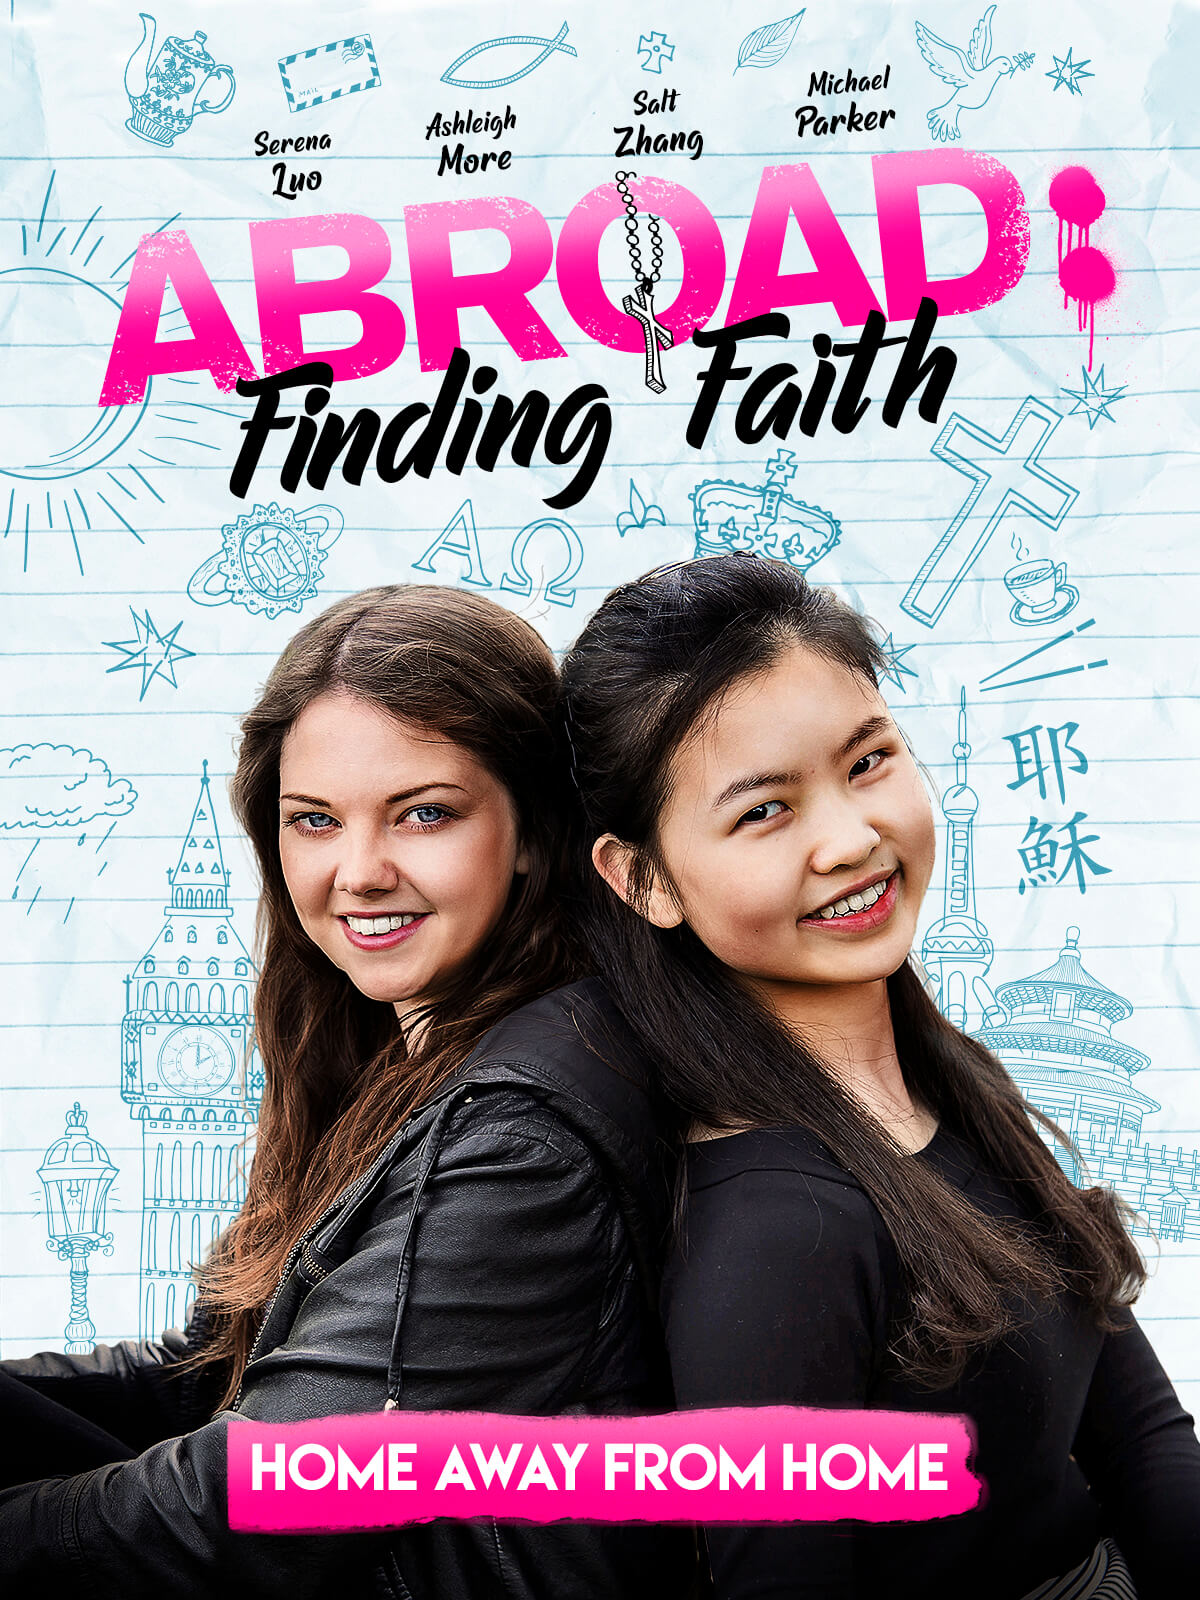 GAE AbroadFindingFaith 1200x1600 ABROAD: FINDING FAITH